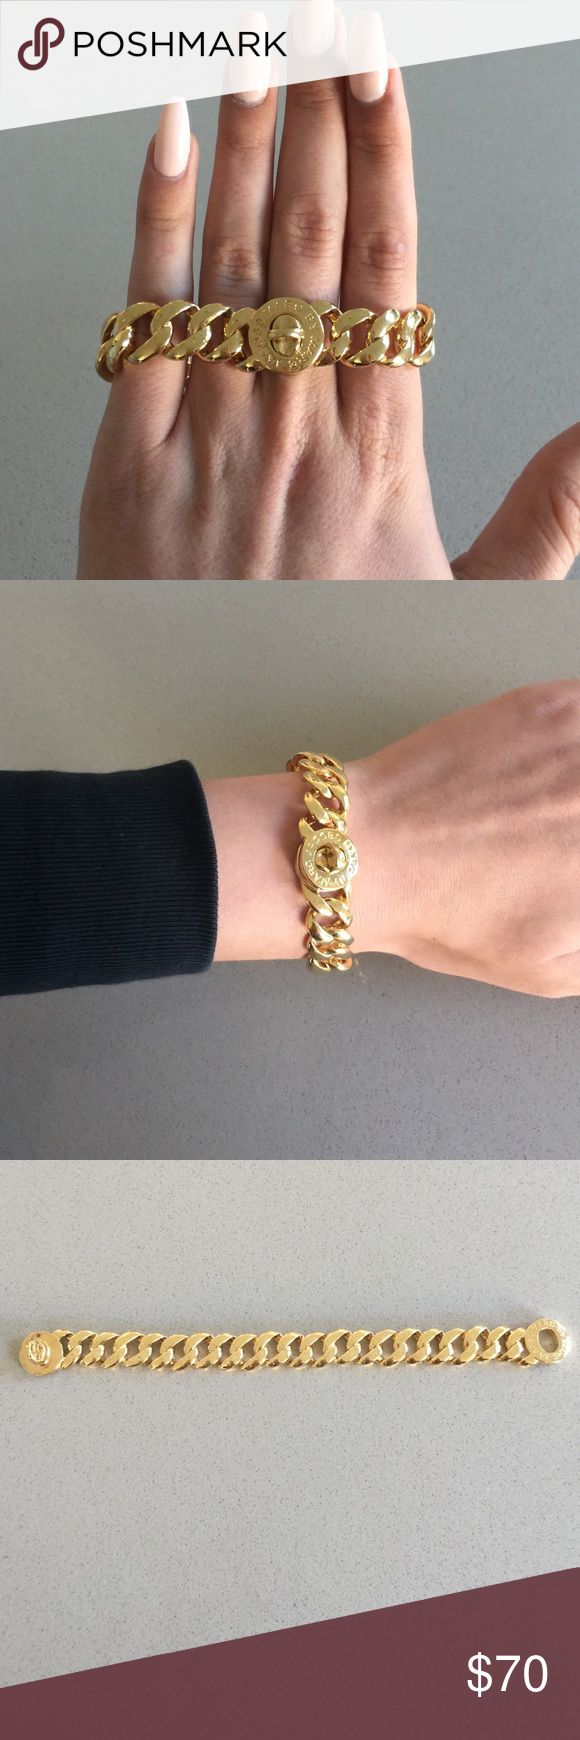 Gold Marc Jacobs bracelet Gold chain link Marc Jacobs bracelet. Great condition. Only been worn a handful of times Marc by Marc Jacobs Jewelry Bracelets